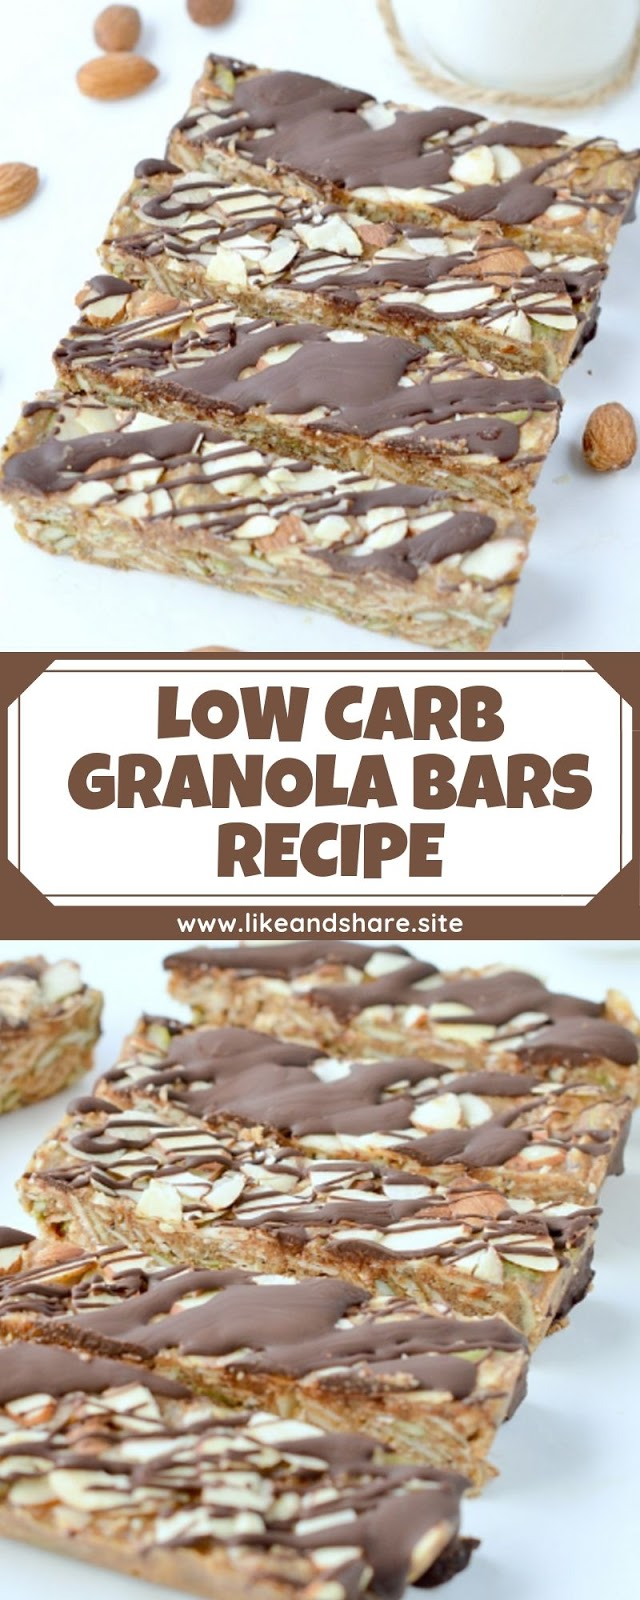 LOW CARB GRANOLA BARS RECIPE